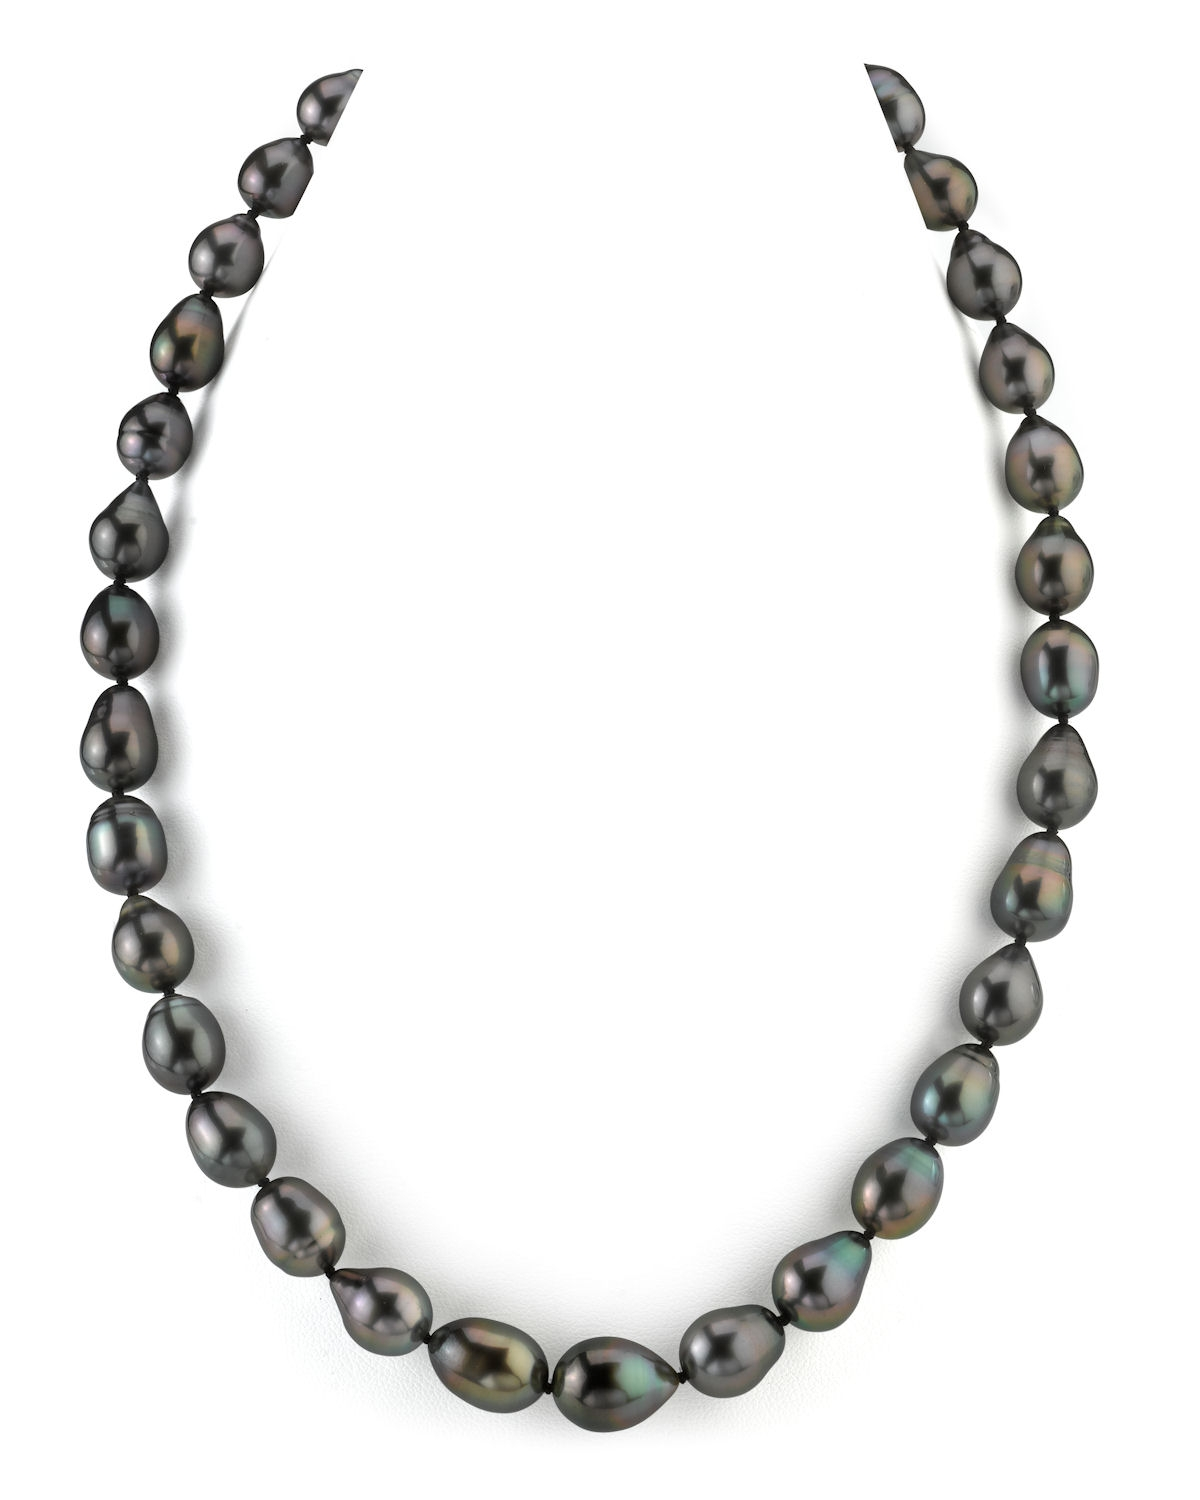 8-10mm Tahitian South Sea Drop Pearl Necklace - AAAA Quality